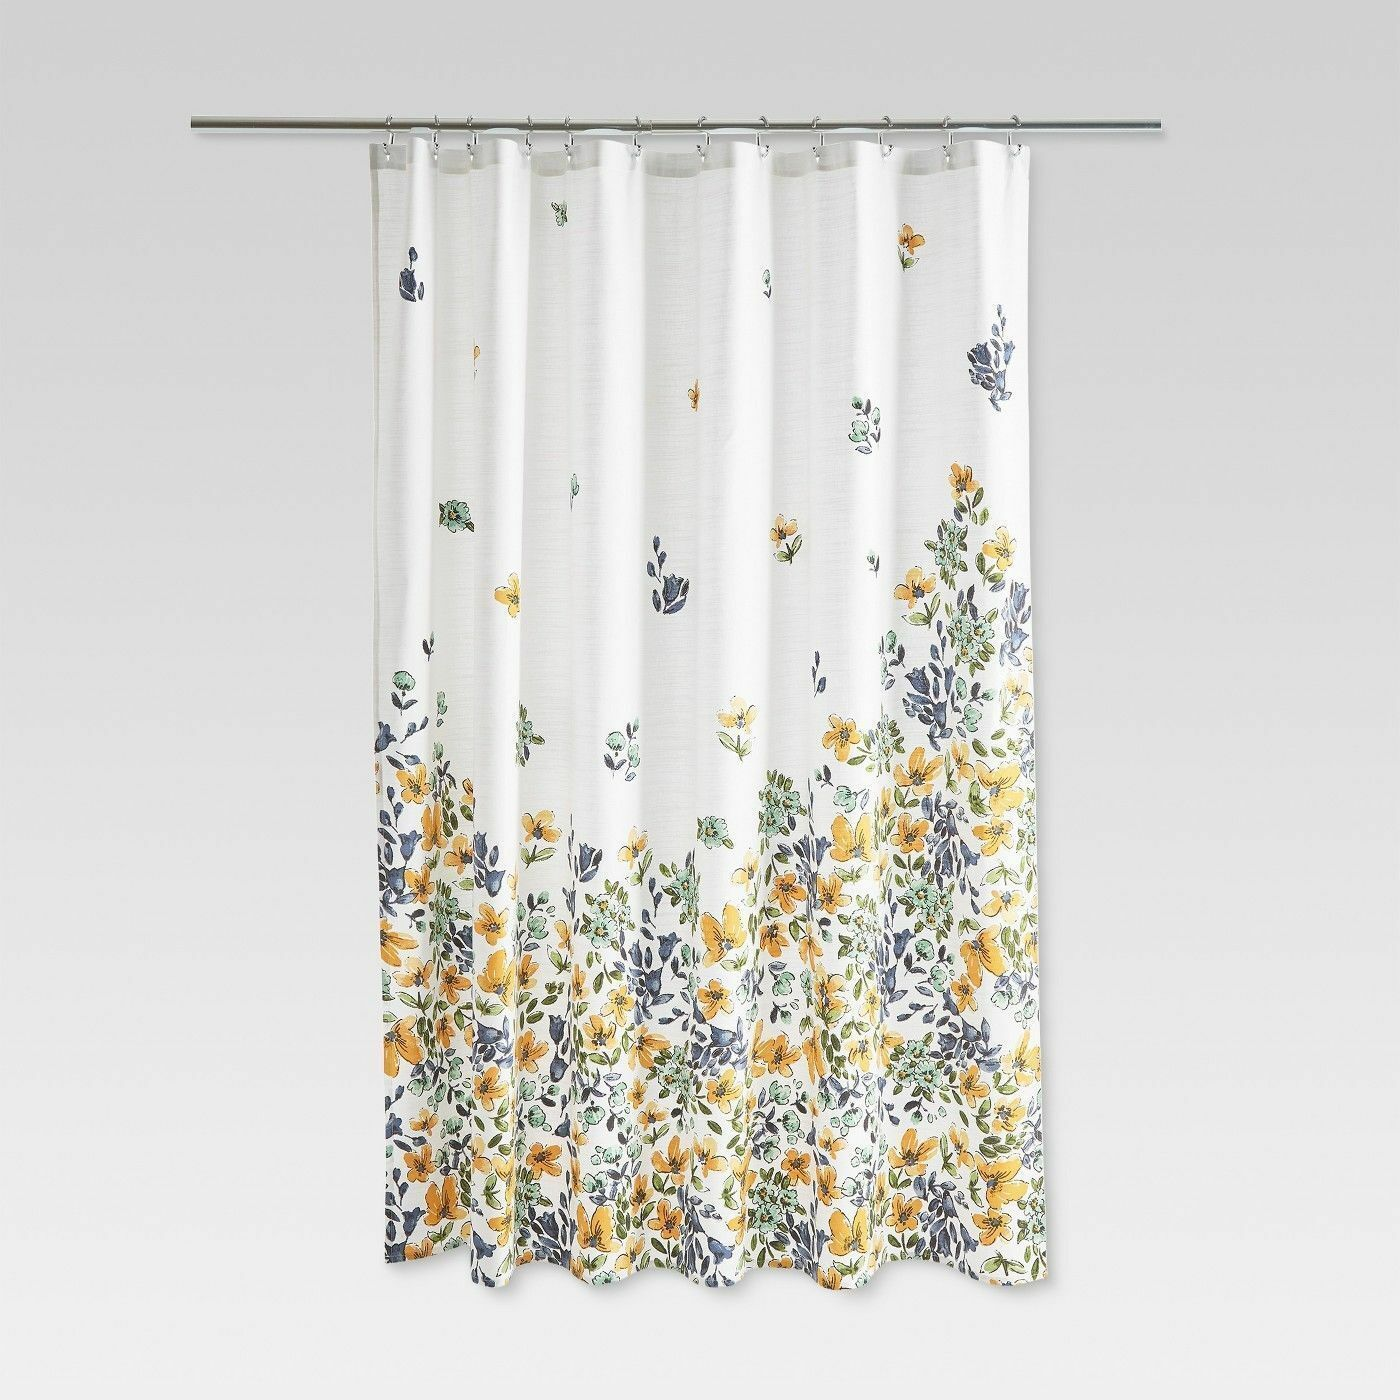 THRESHOLD Gold Medal Floral Gelb Blau Fabric Shower Curtain NEW FLOWERS 56f556